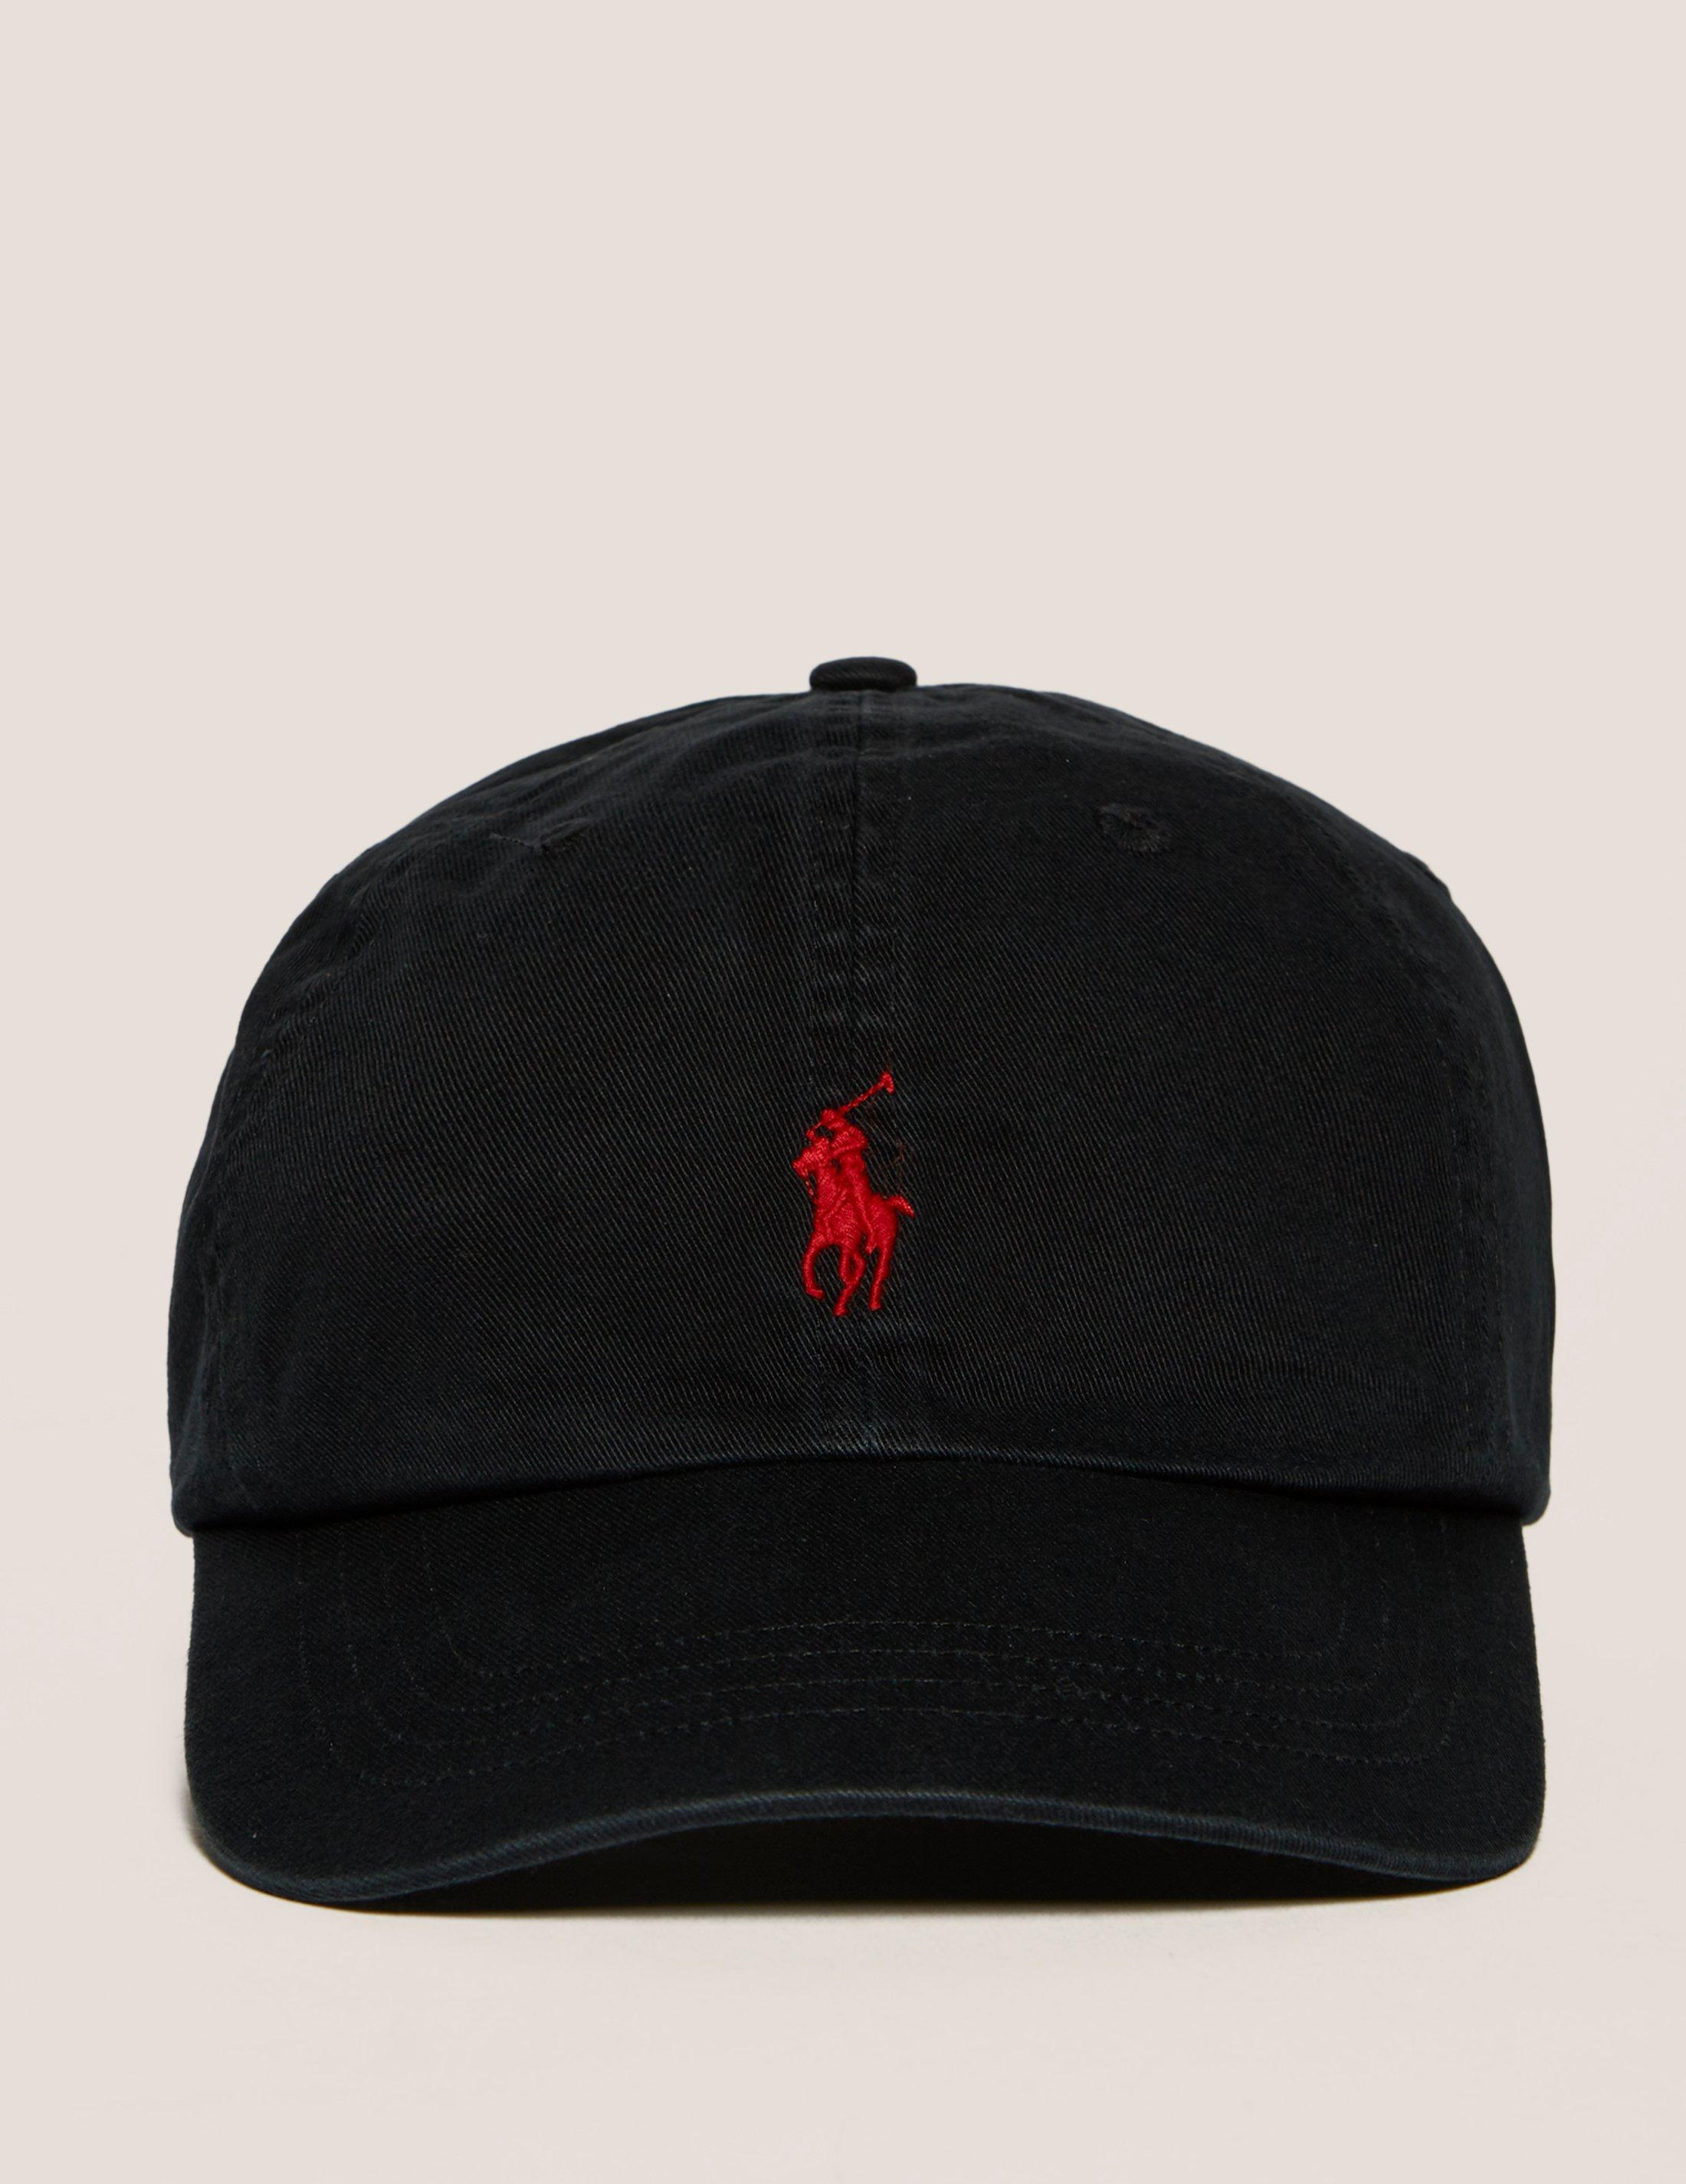 lyst polo ralph lauren classic sport cap in black for men. Black Bedroom Furniture Sets. Home Design Ideas